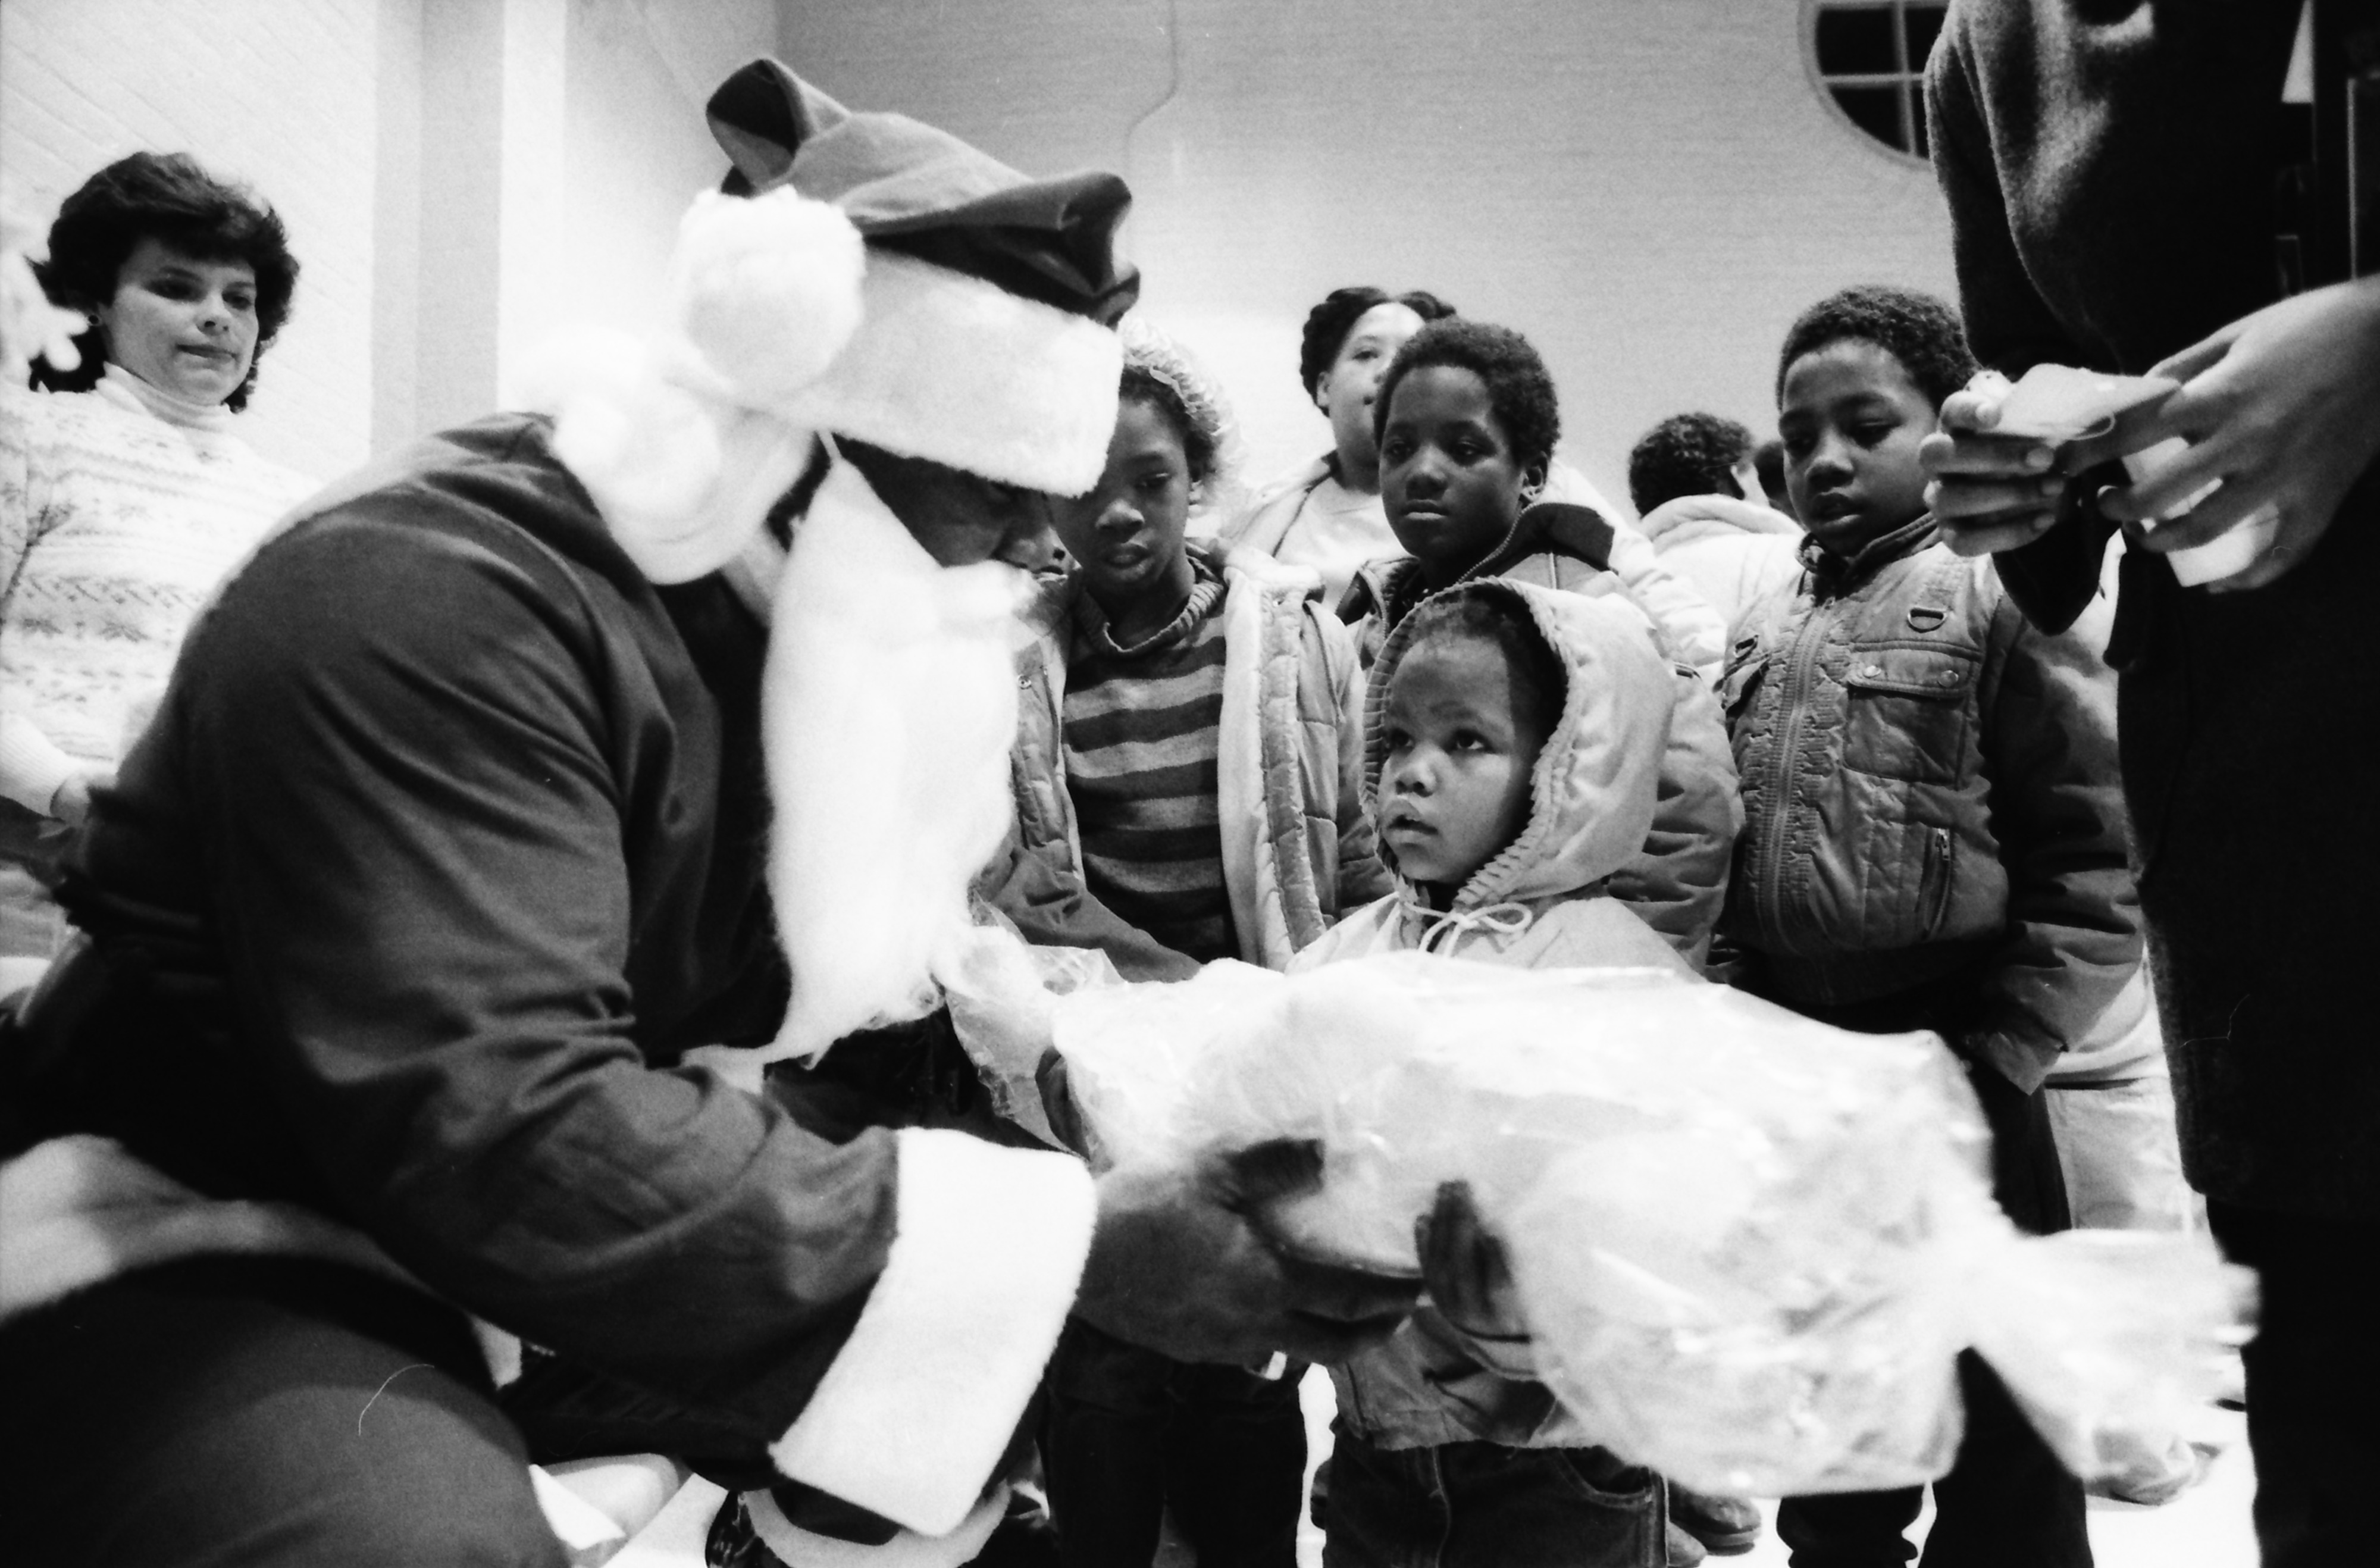 Valyncia Burrus Meets Santa at Parkridge Community Center, December 1986 image